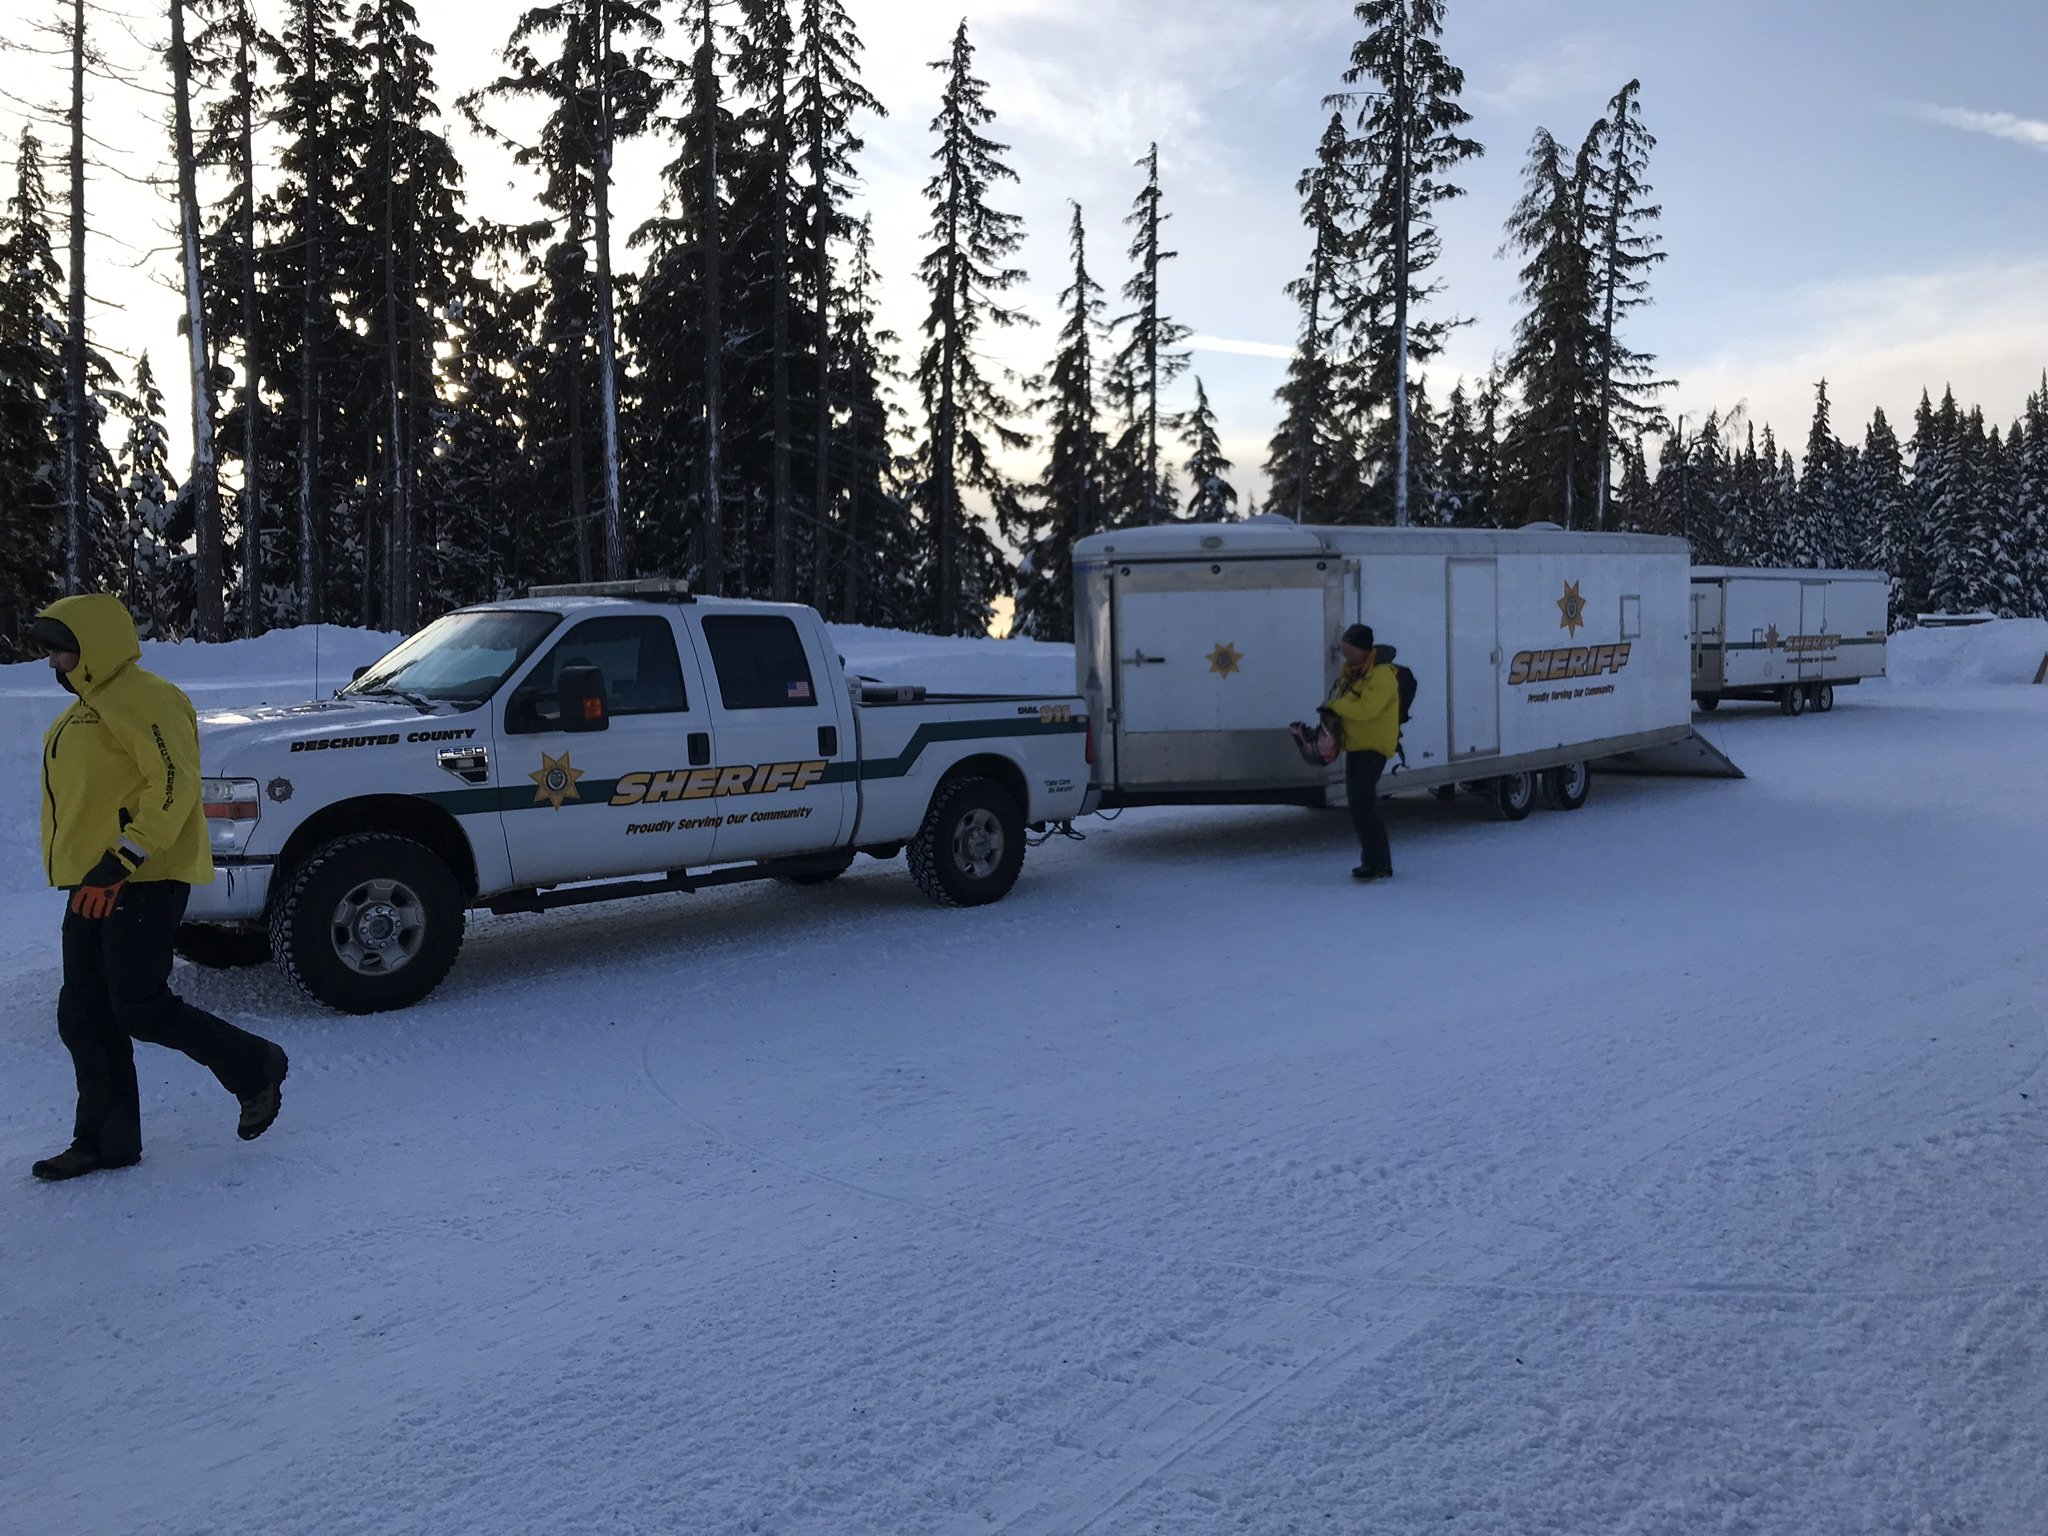 STUCK SNOWMOBILE RIDER RESCUED